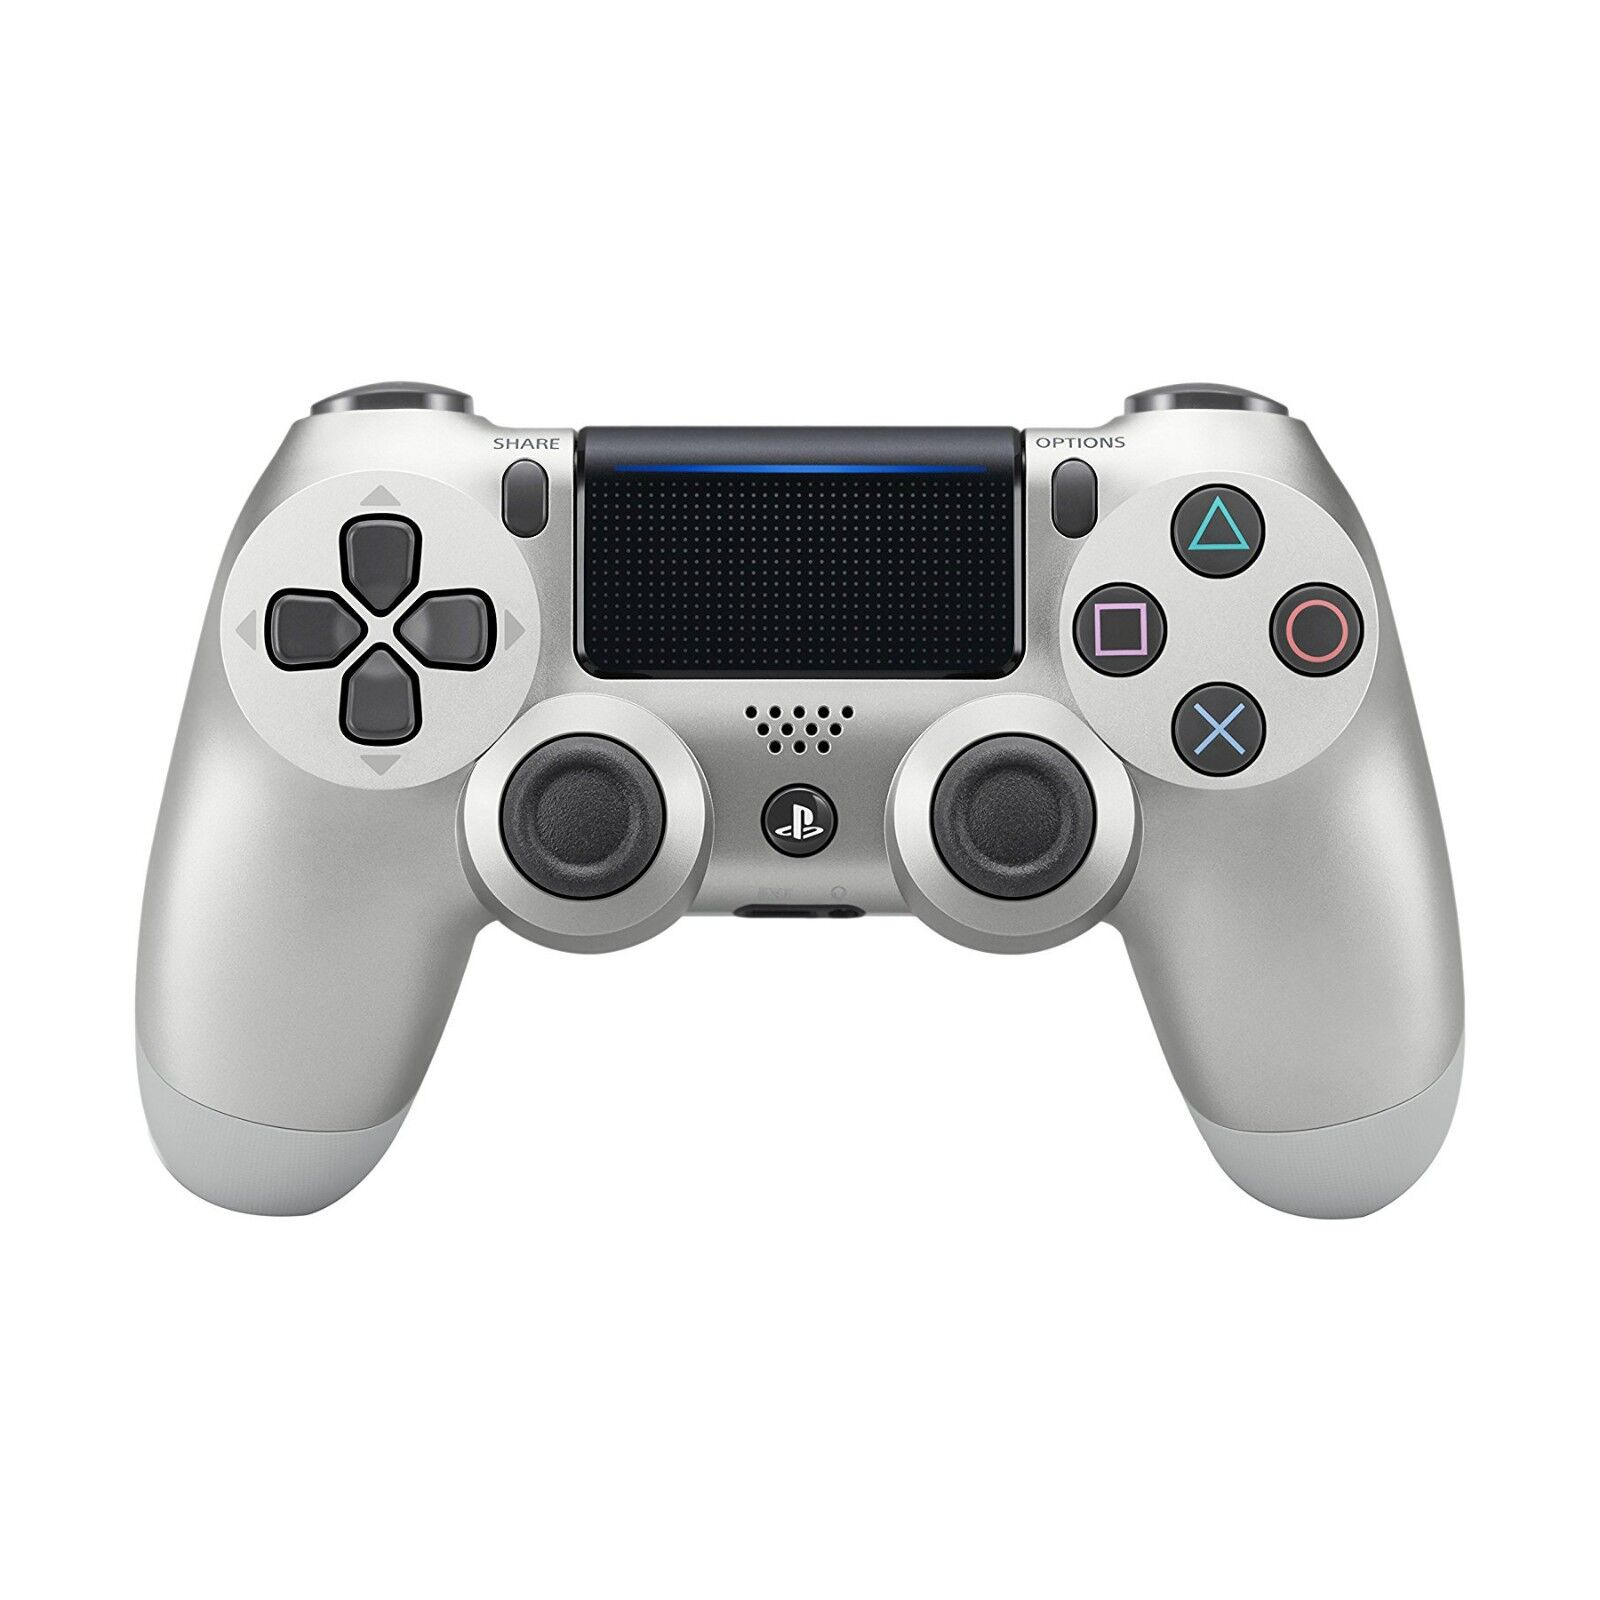 Изображение товара PS4 Sony Dualshock 4 Wireless Controller for PlayStation 4 - Silver - CUH-ZCT2U